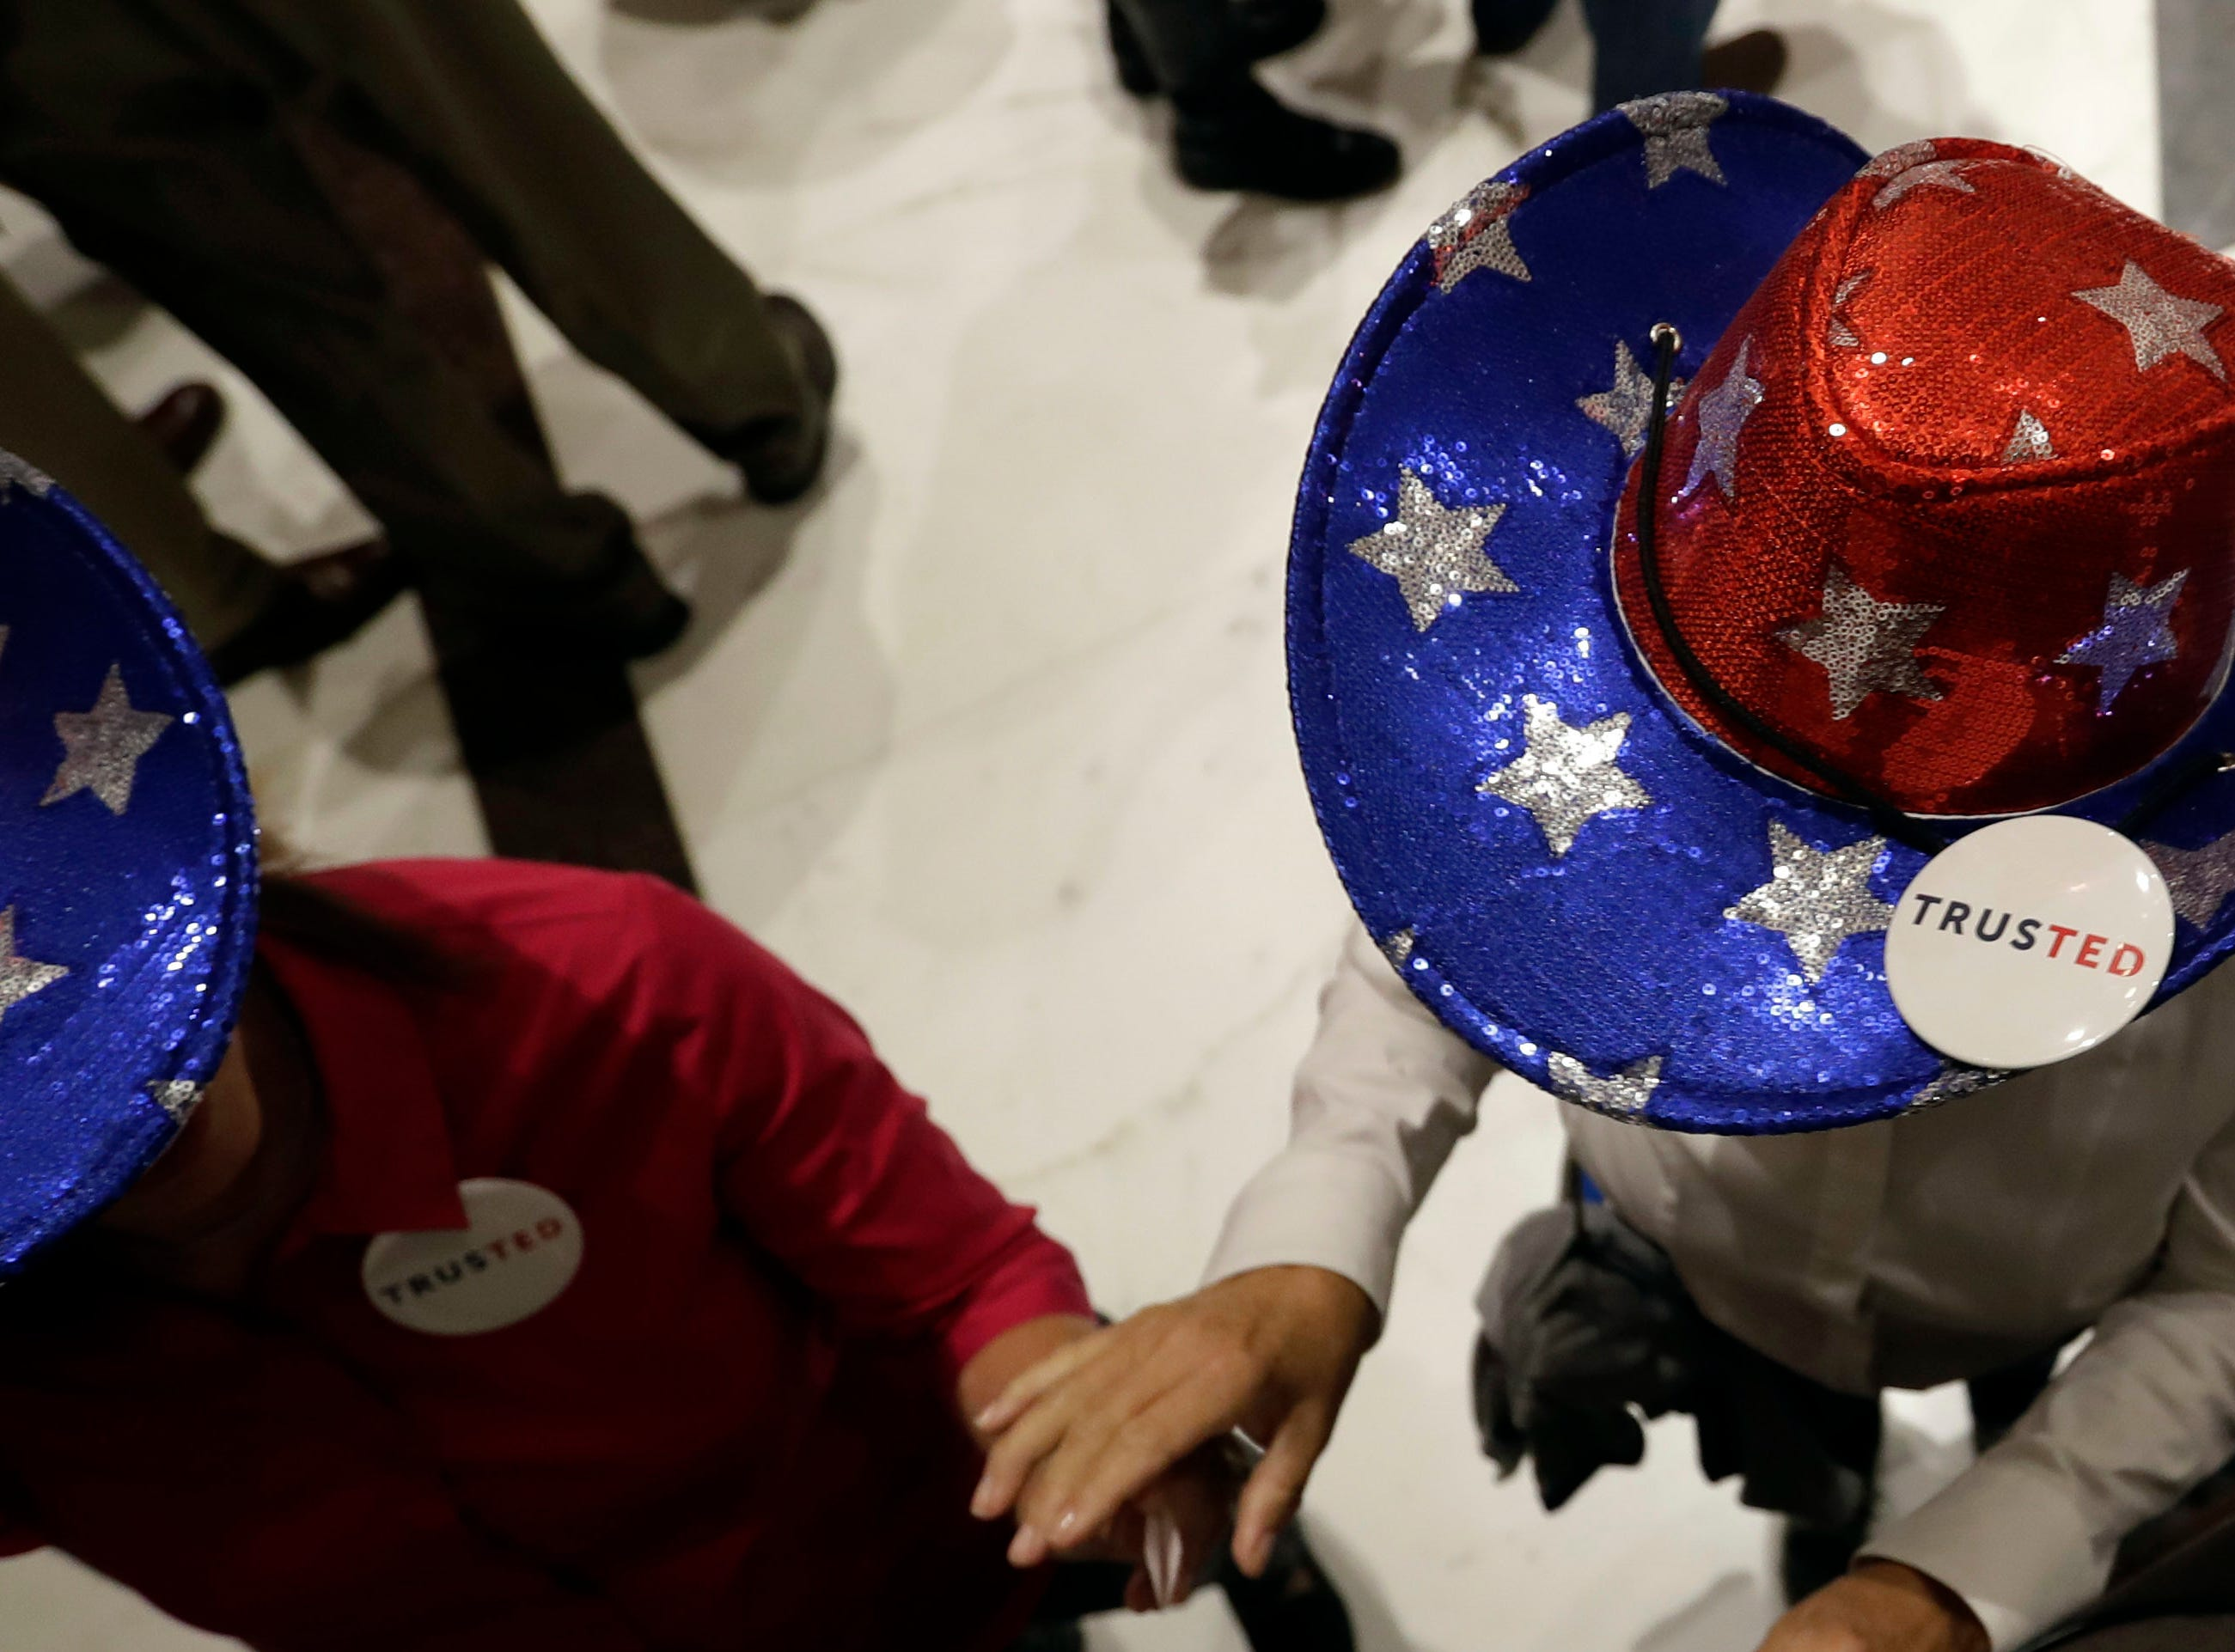 Supporters of Sen. Ted Cruz, R-Texas, wait to enter an election night party, Tuesday, Nov. 6, 2018, in Houston. (AP Photo/David J. Phillip)